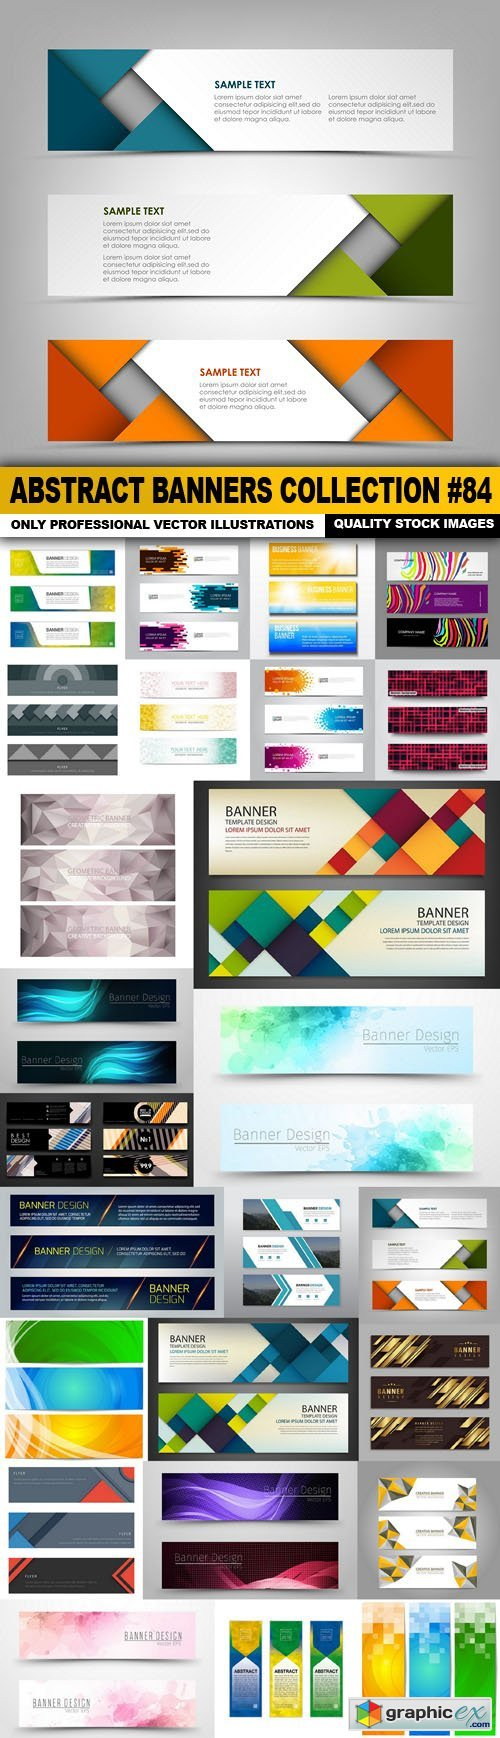 Abstract Banners Collection #84